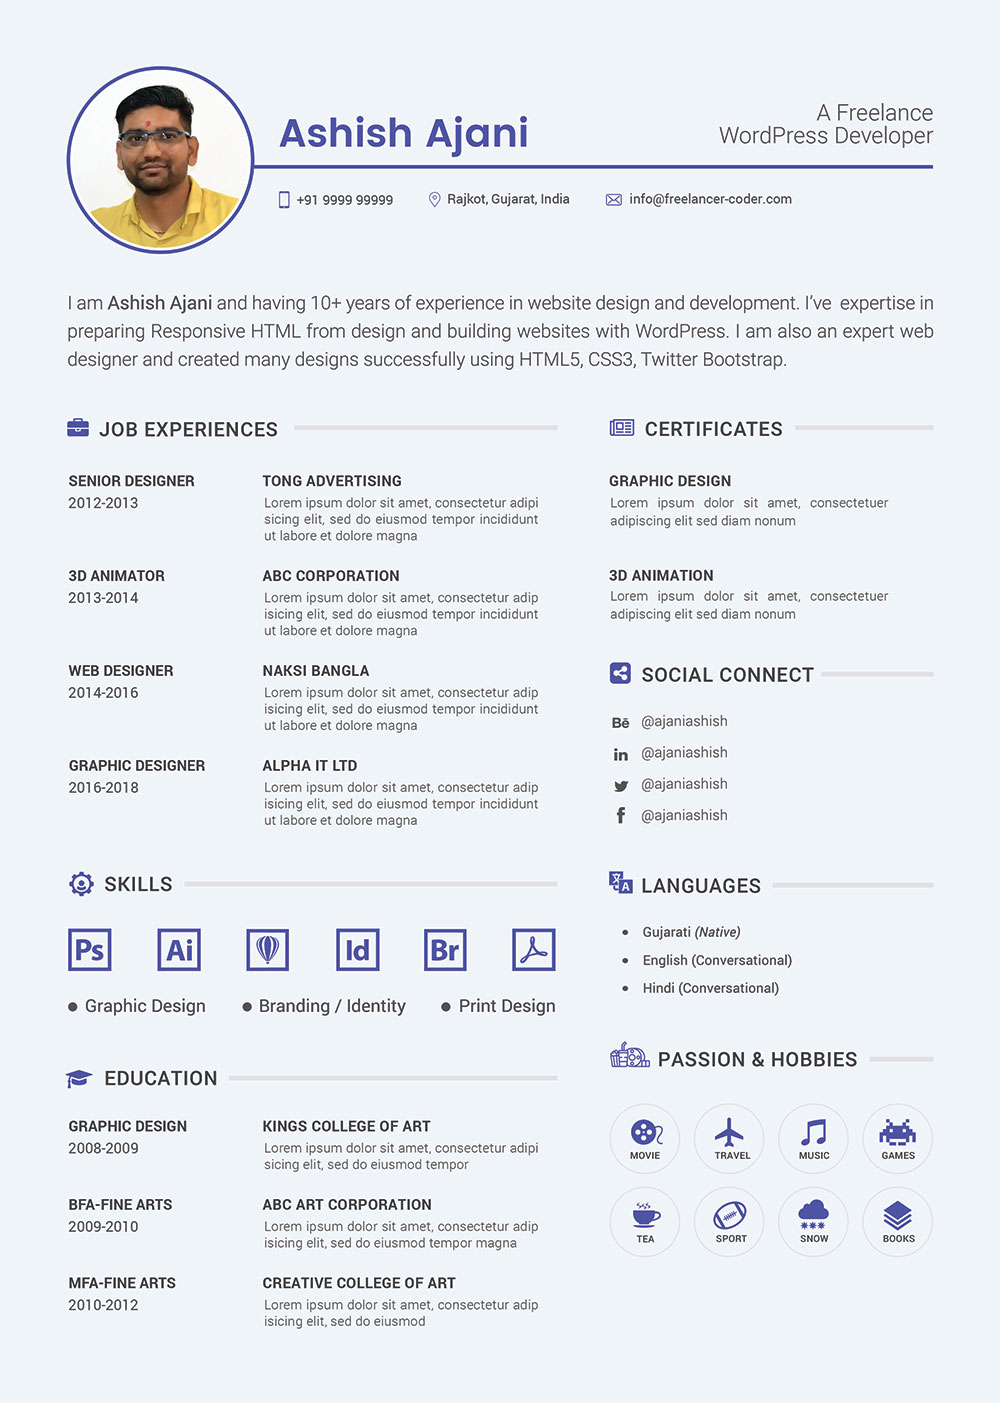 Free-PSD-Resume-Template-&-Cover-Letter-for-PHP-&-Wordpress-Developer-1